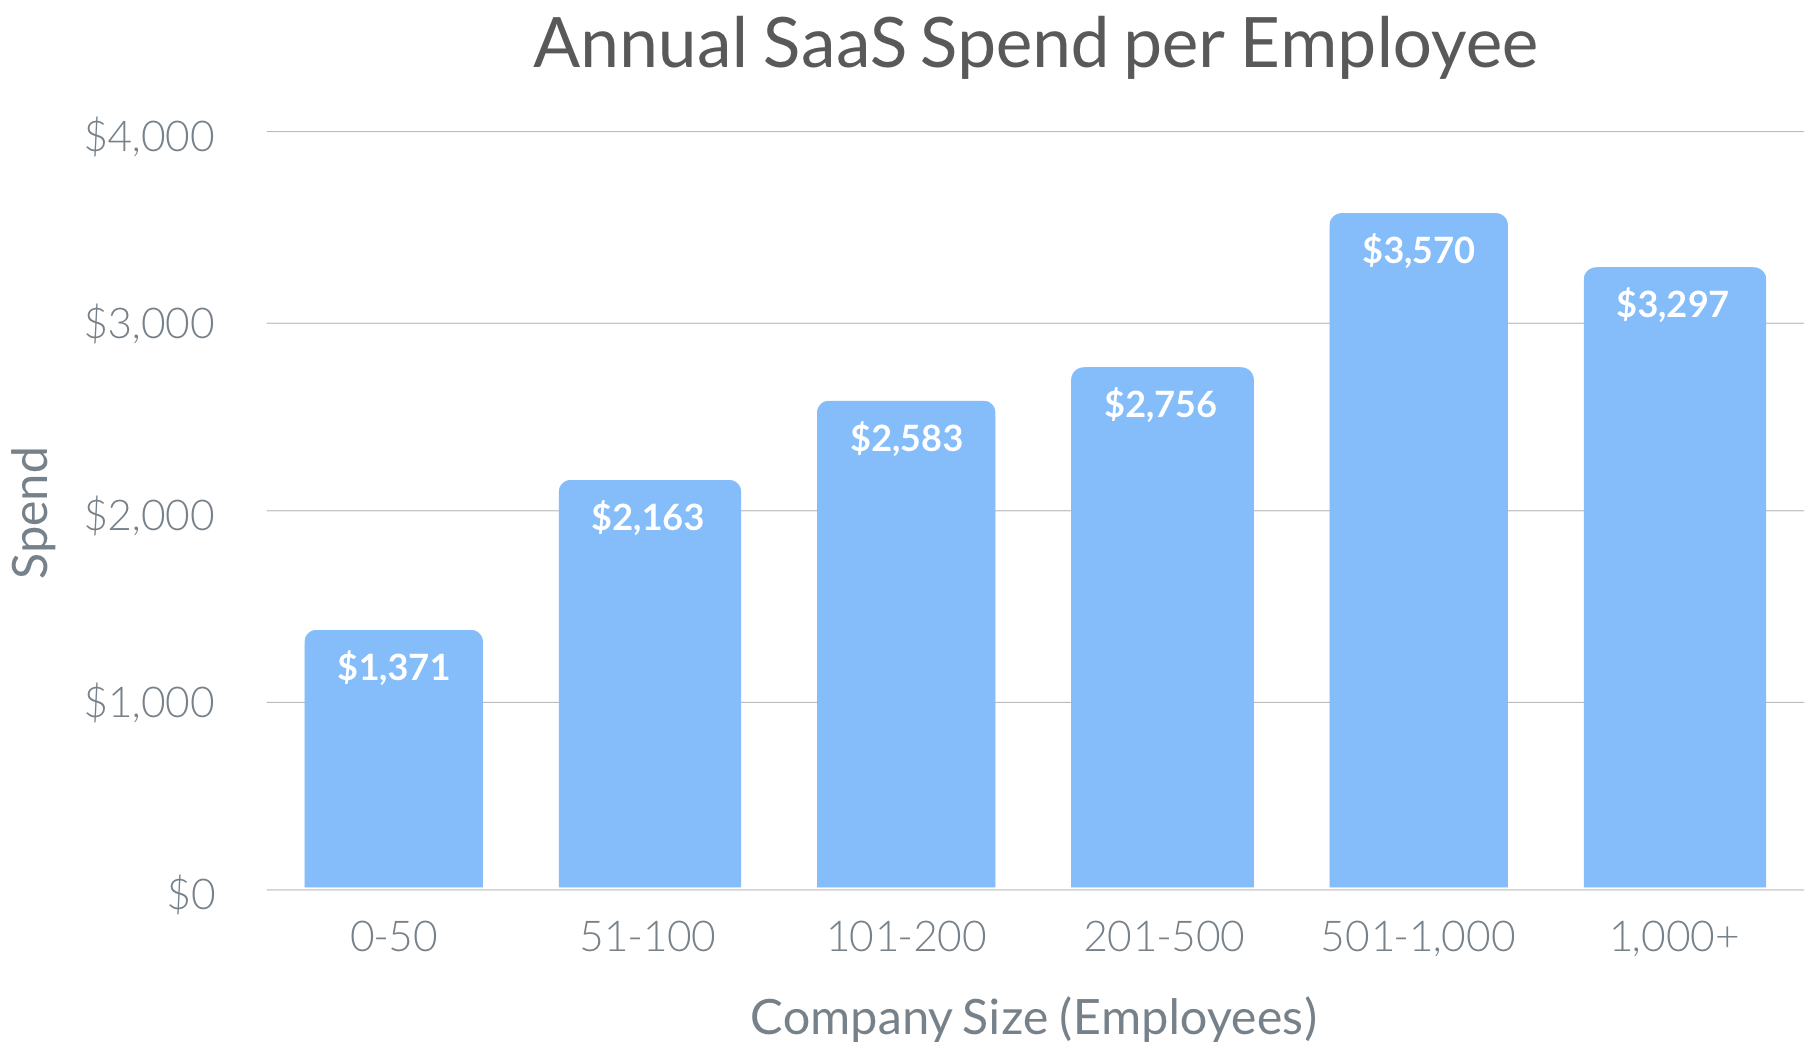 SaaS Trends Annual SaaS Spend per Employee